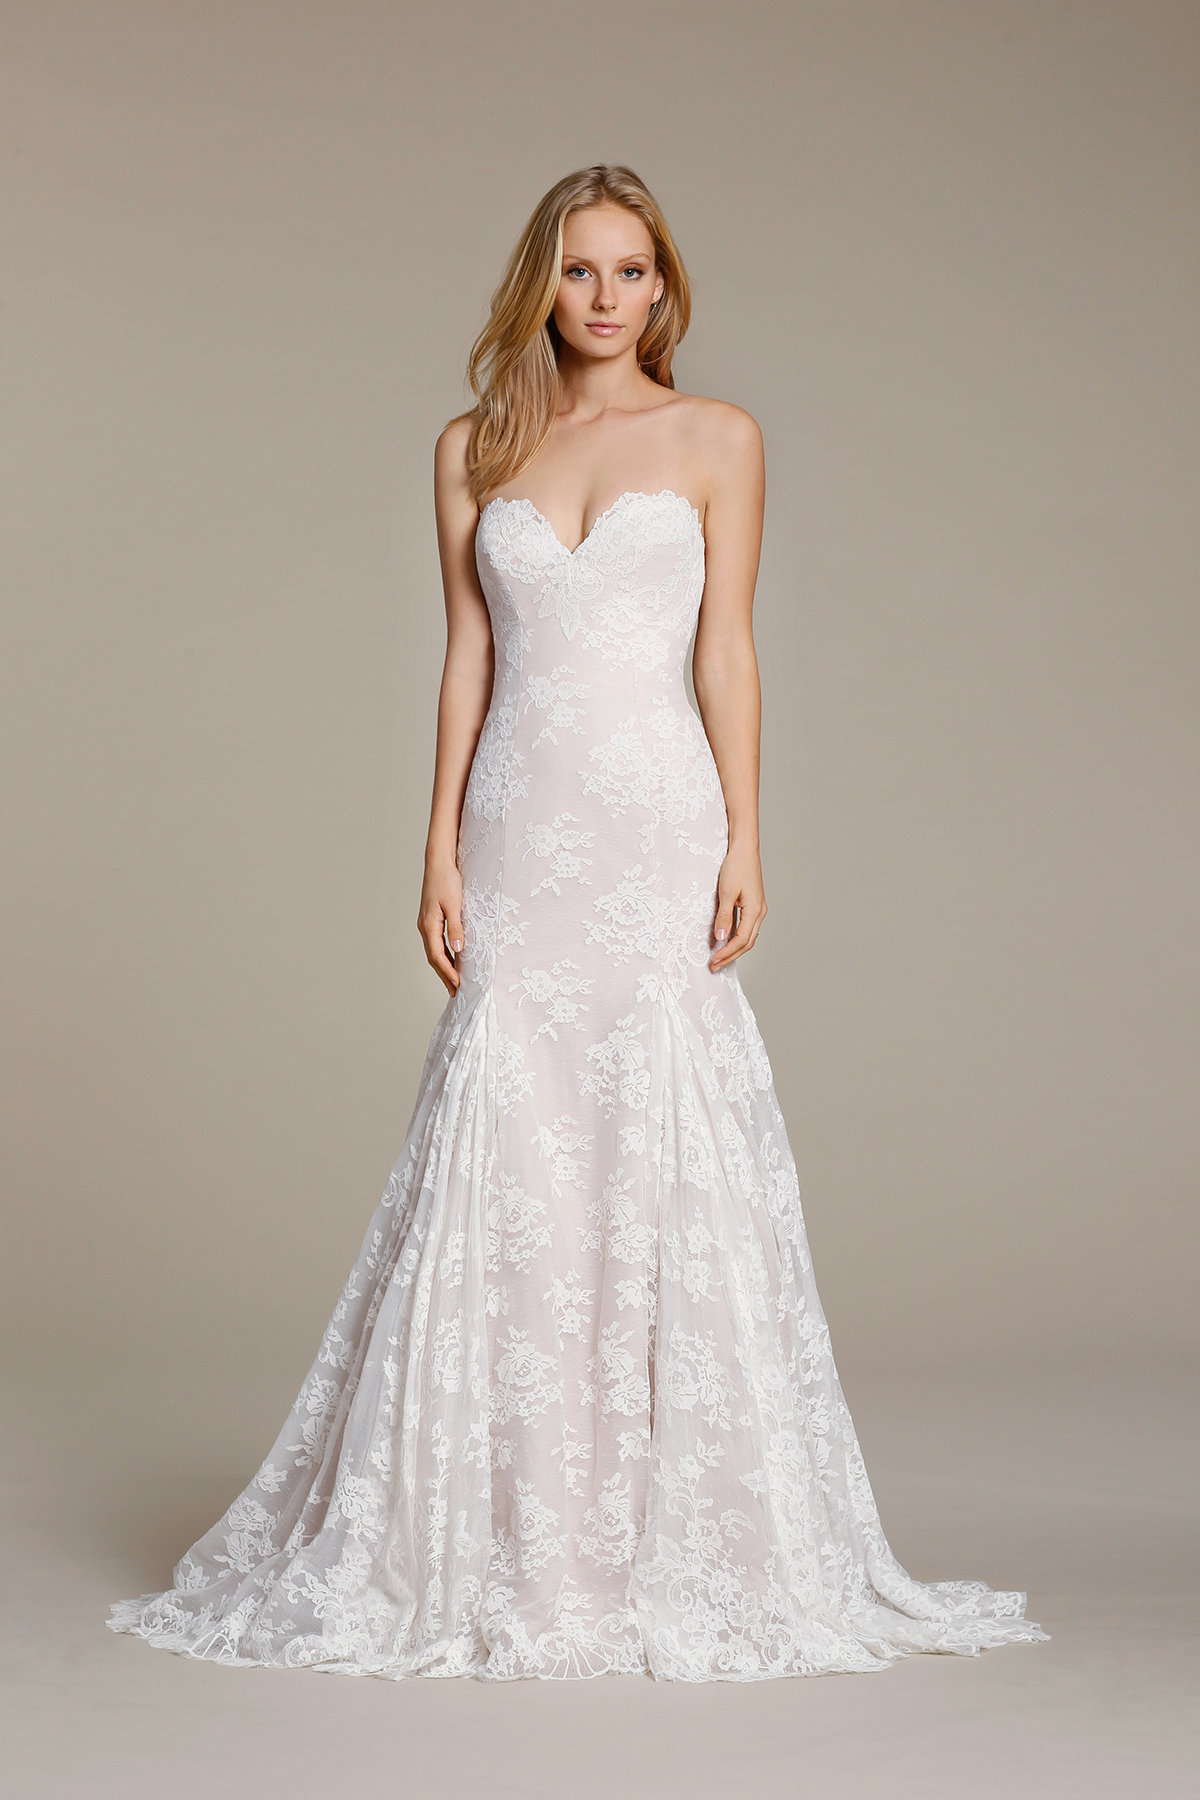 Sweetheart Lace Fit And Flare Wedding Dress Kleinfeld Bridal